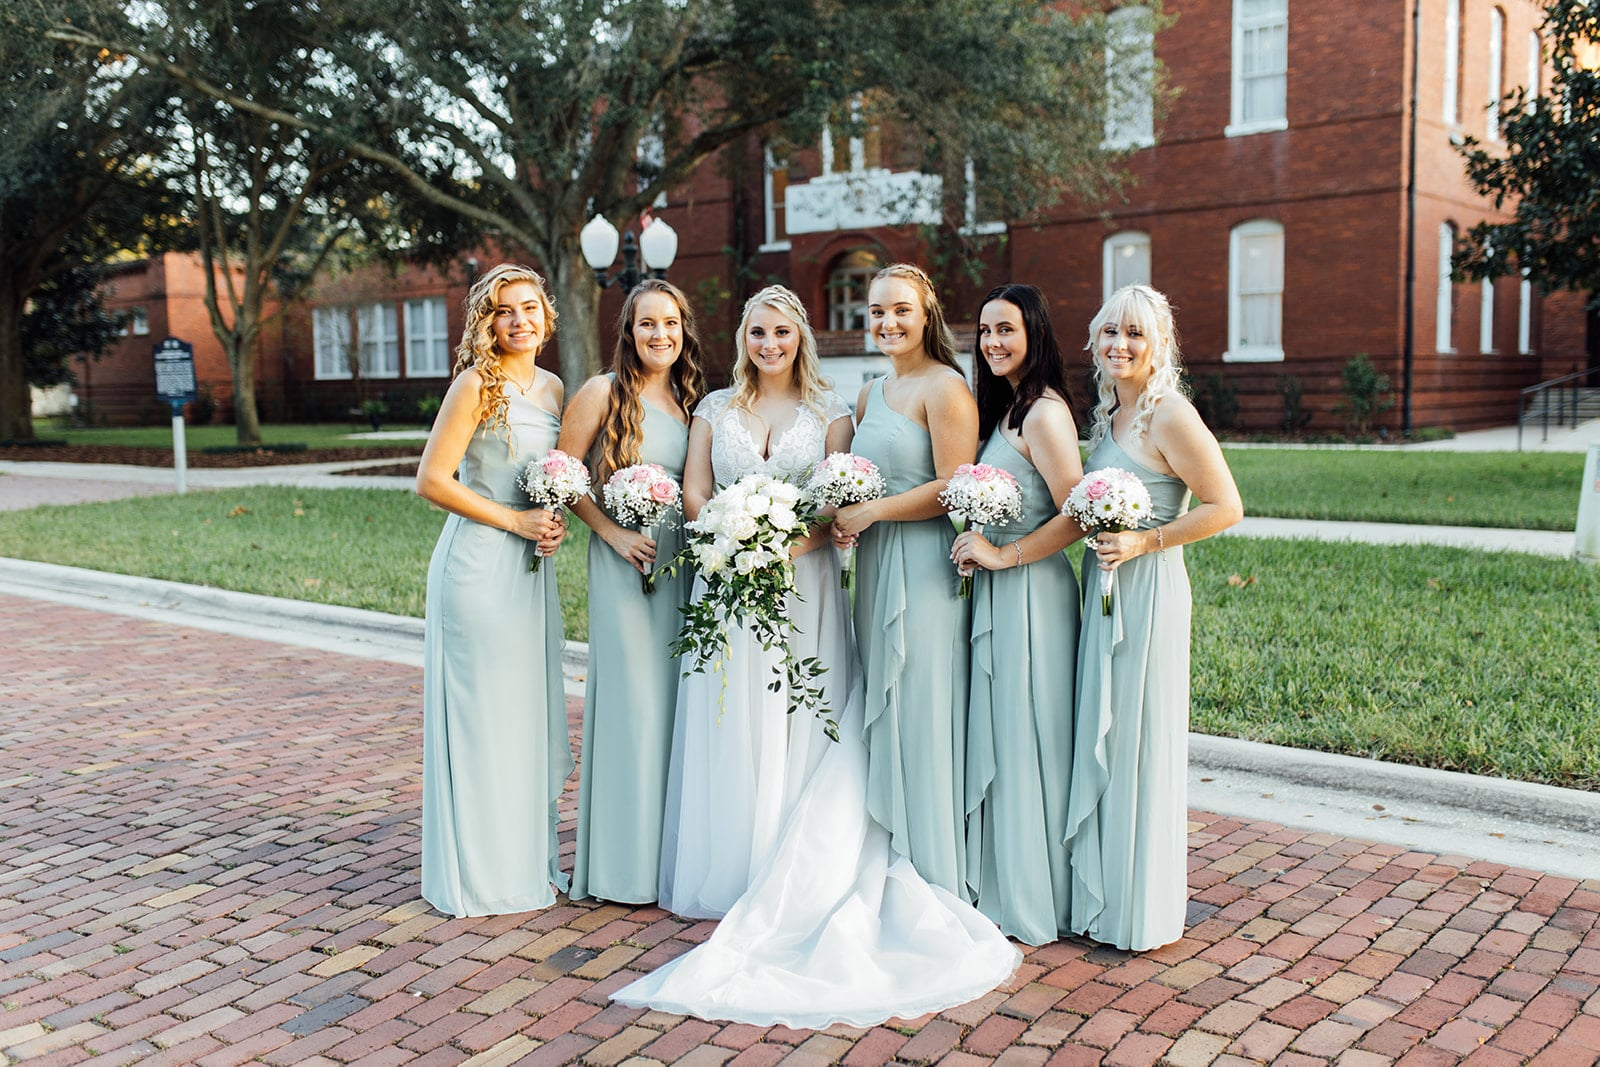 bride with five bridesmaids stands outside old school house as wedding venue holding white colored floral bouquets and smiling